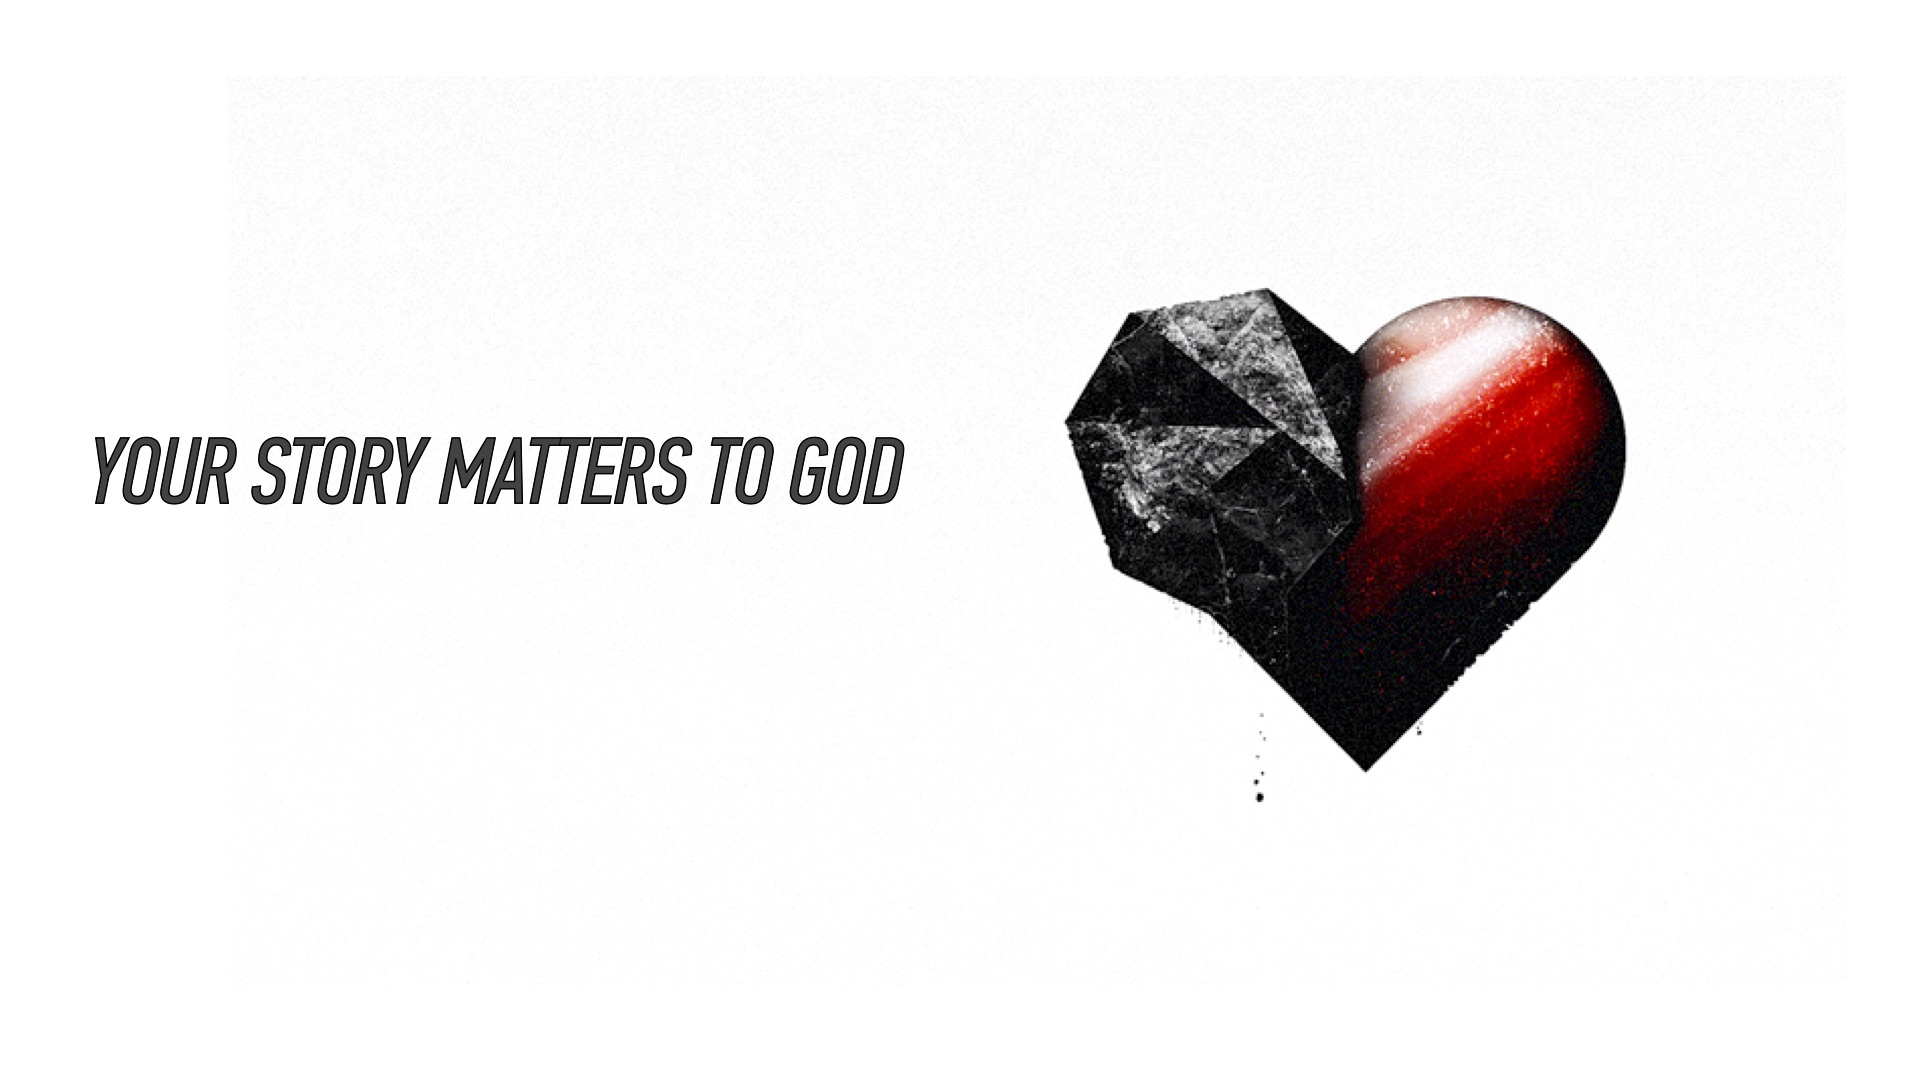 20160228 Your Story Matters To God.jpg